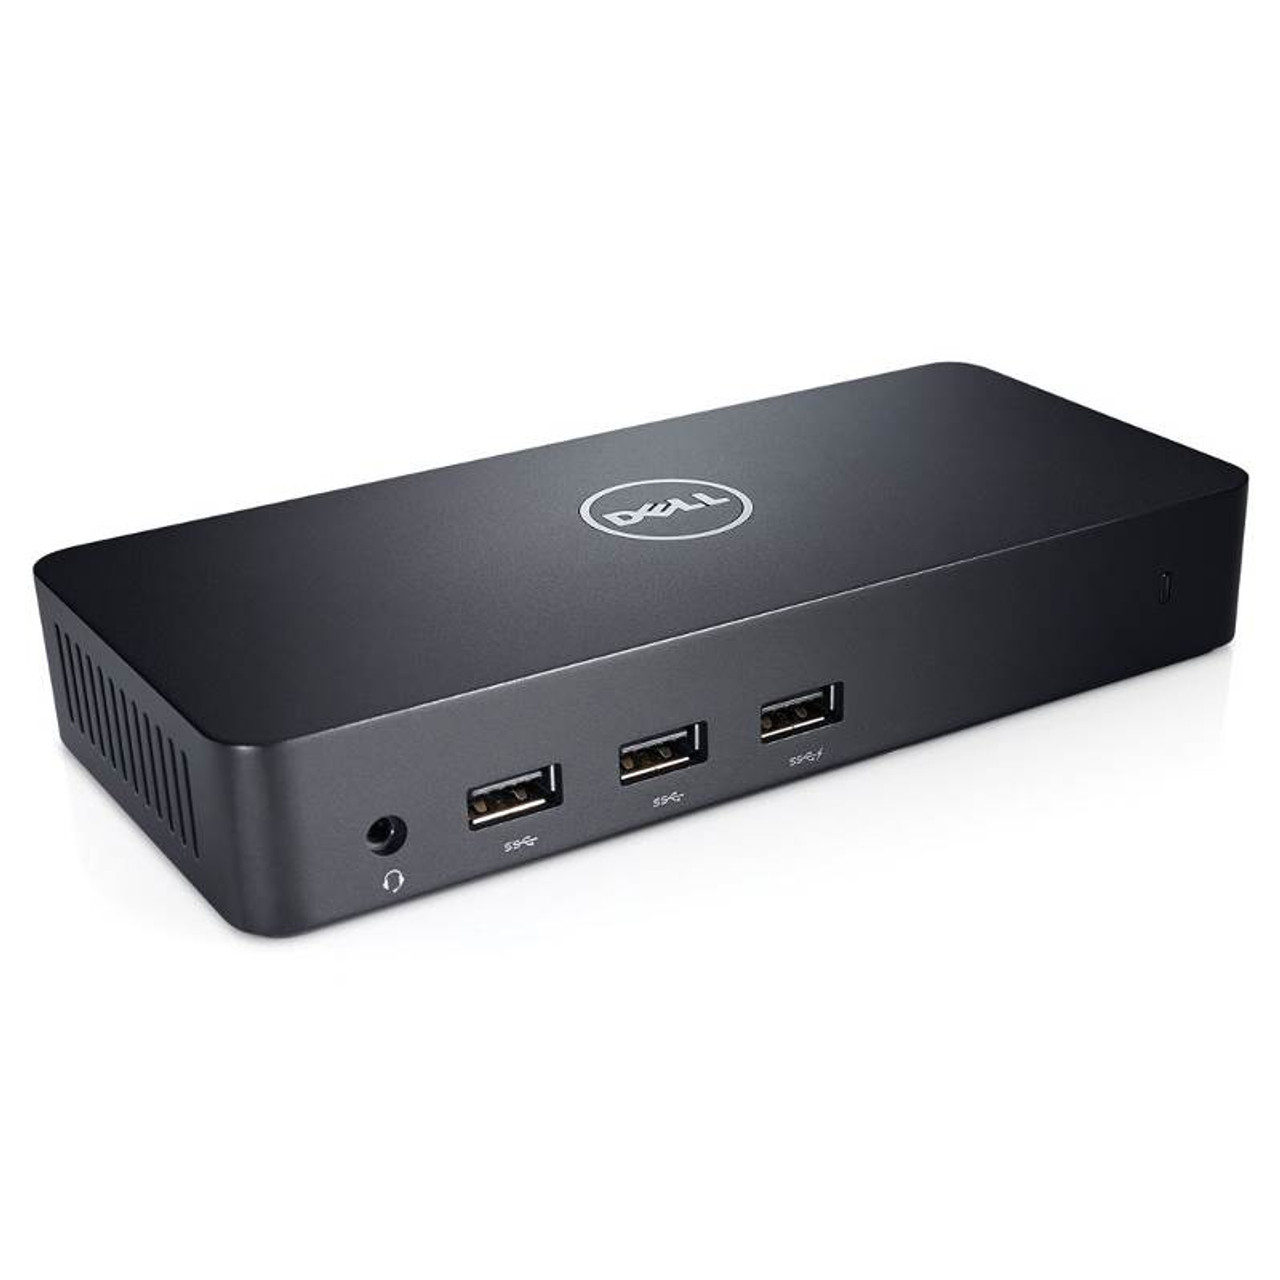 Image for Dell UHD 4K USB3.0 Port Display Replicator D3100 - 452-11714 CX Computer Superstore